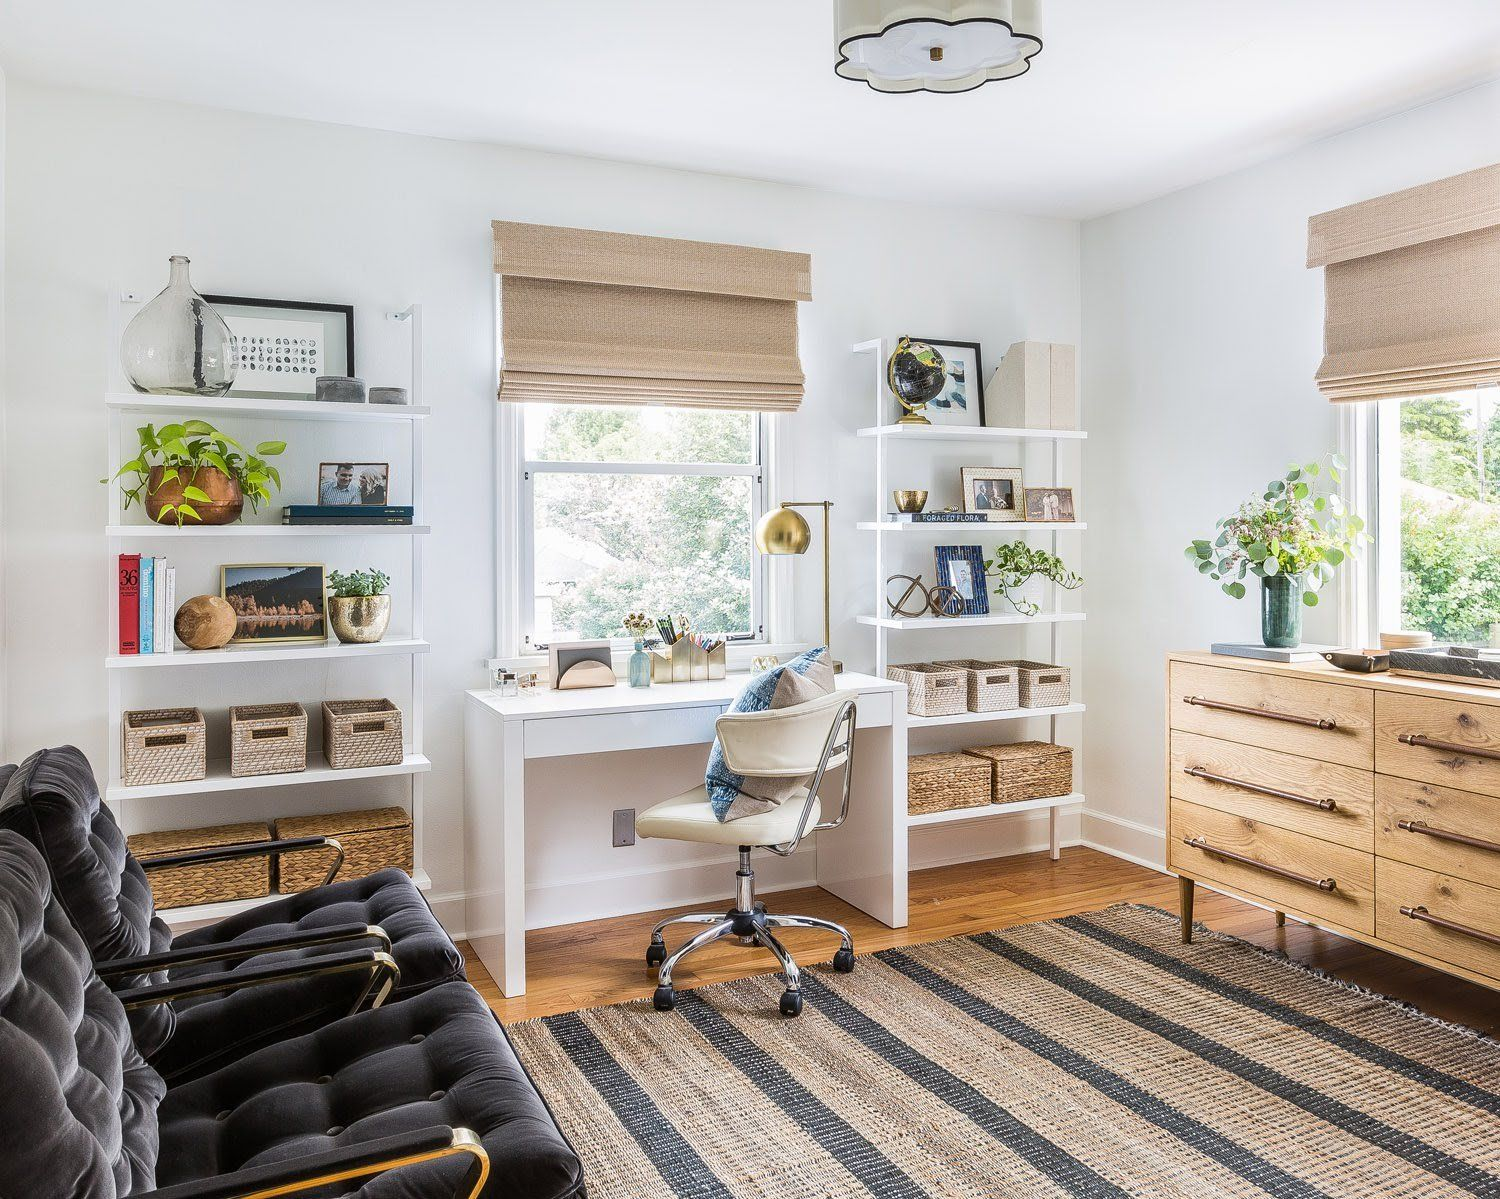 Home office and shelf styling west elm - Eclectic Glam Style In ...